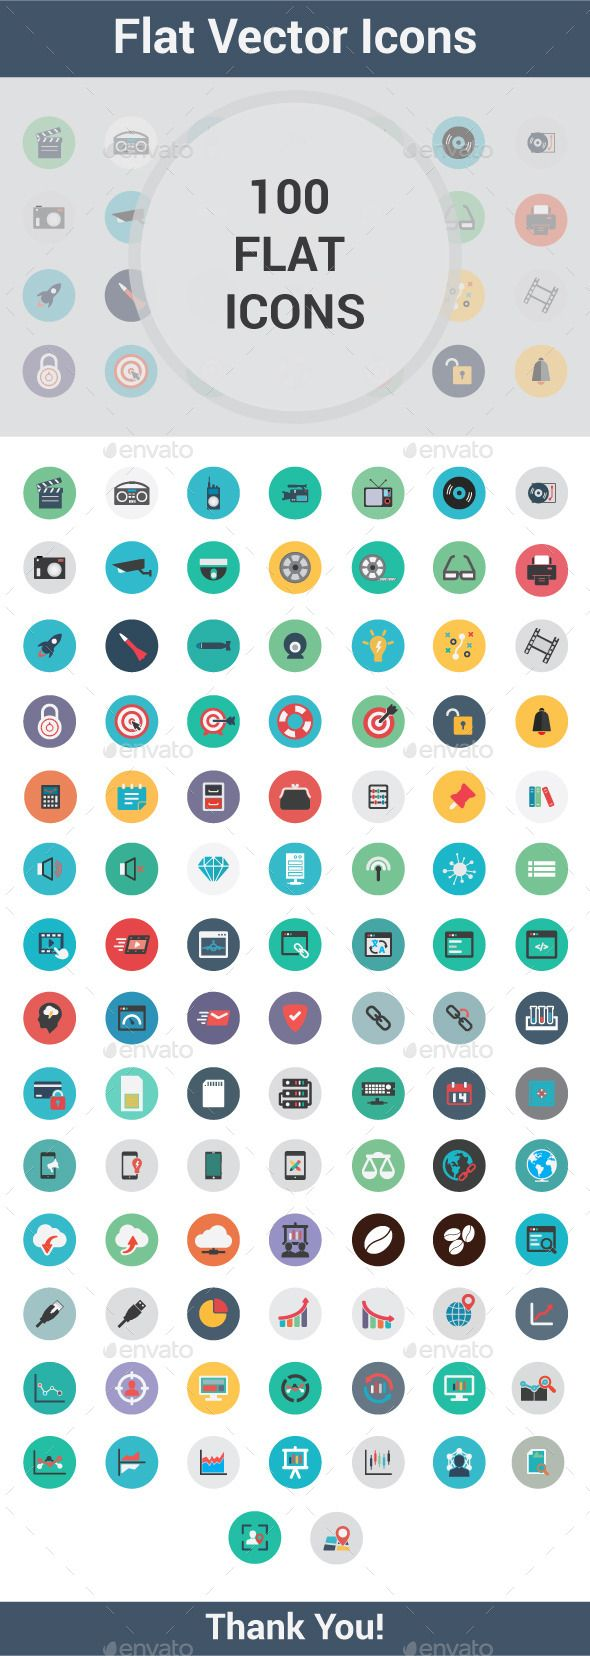 100 Flat Vector Icon #design Buy Now: http://graphicriver.net/item/100-flat-vector-icon/12845512?ref=ksioks